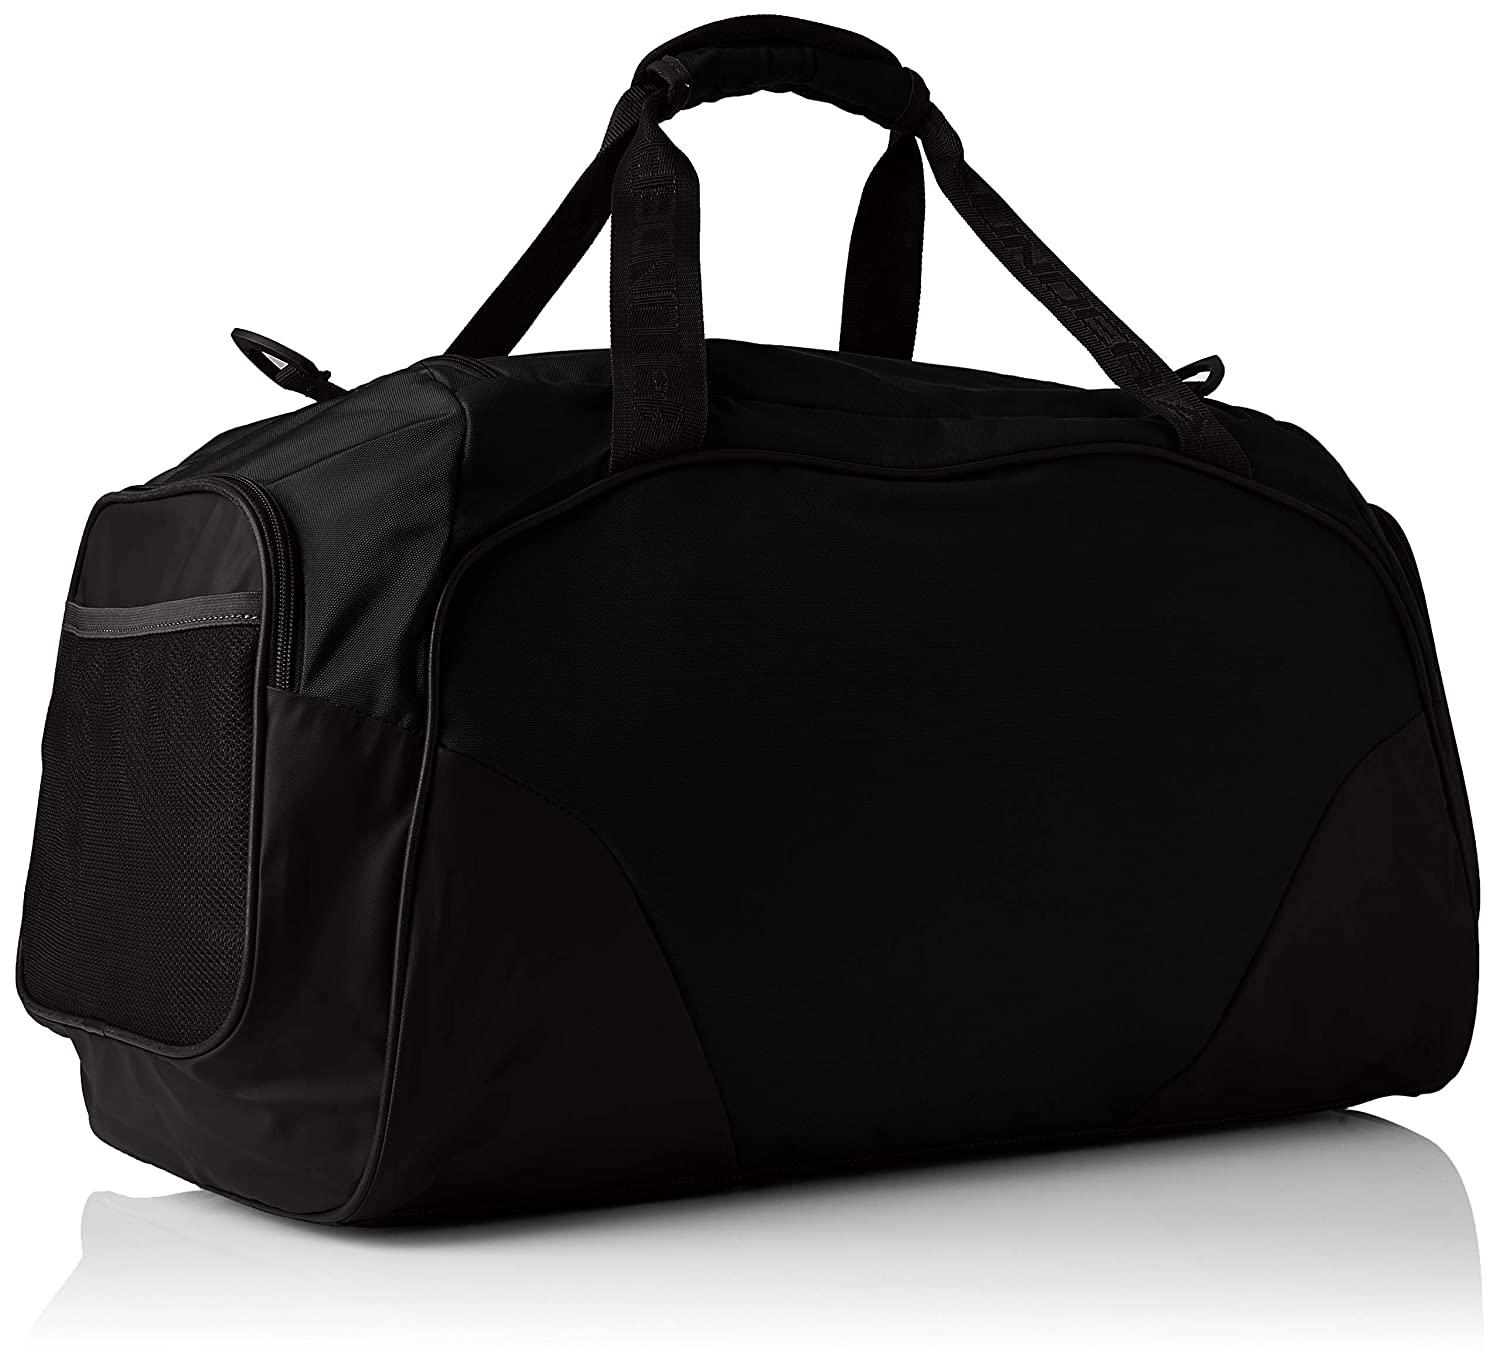 Under Armour Undeniable Duffle 3.0 Md Sporttasche 65 x 30 x